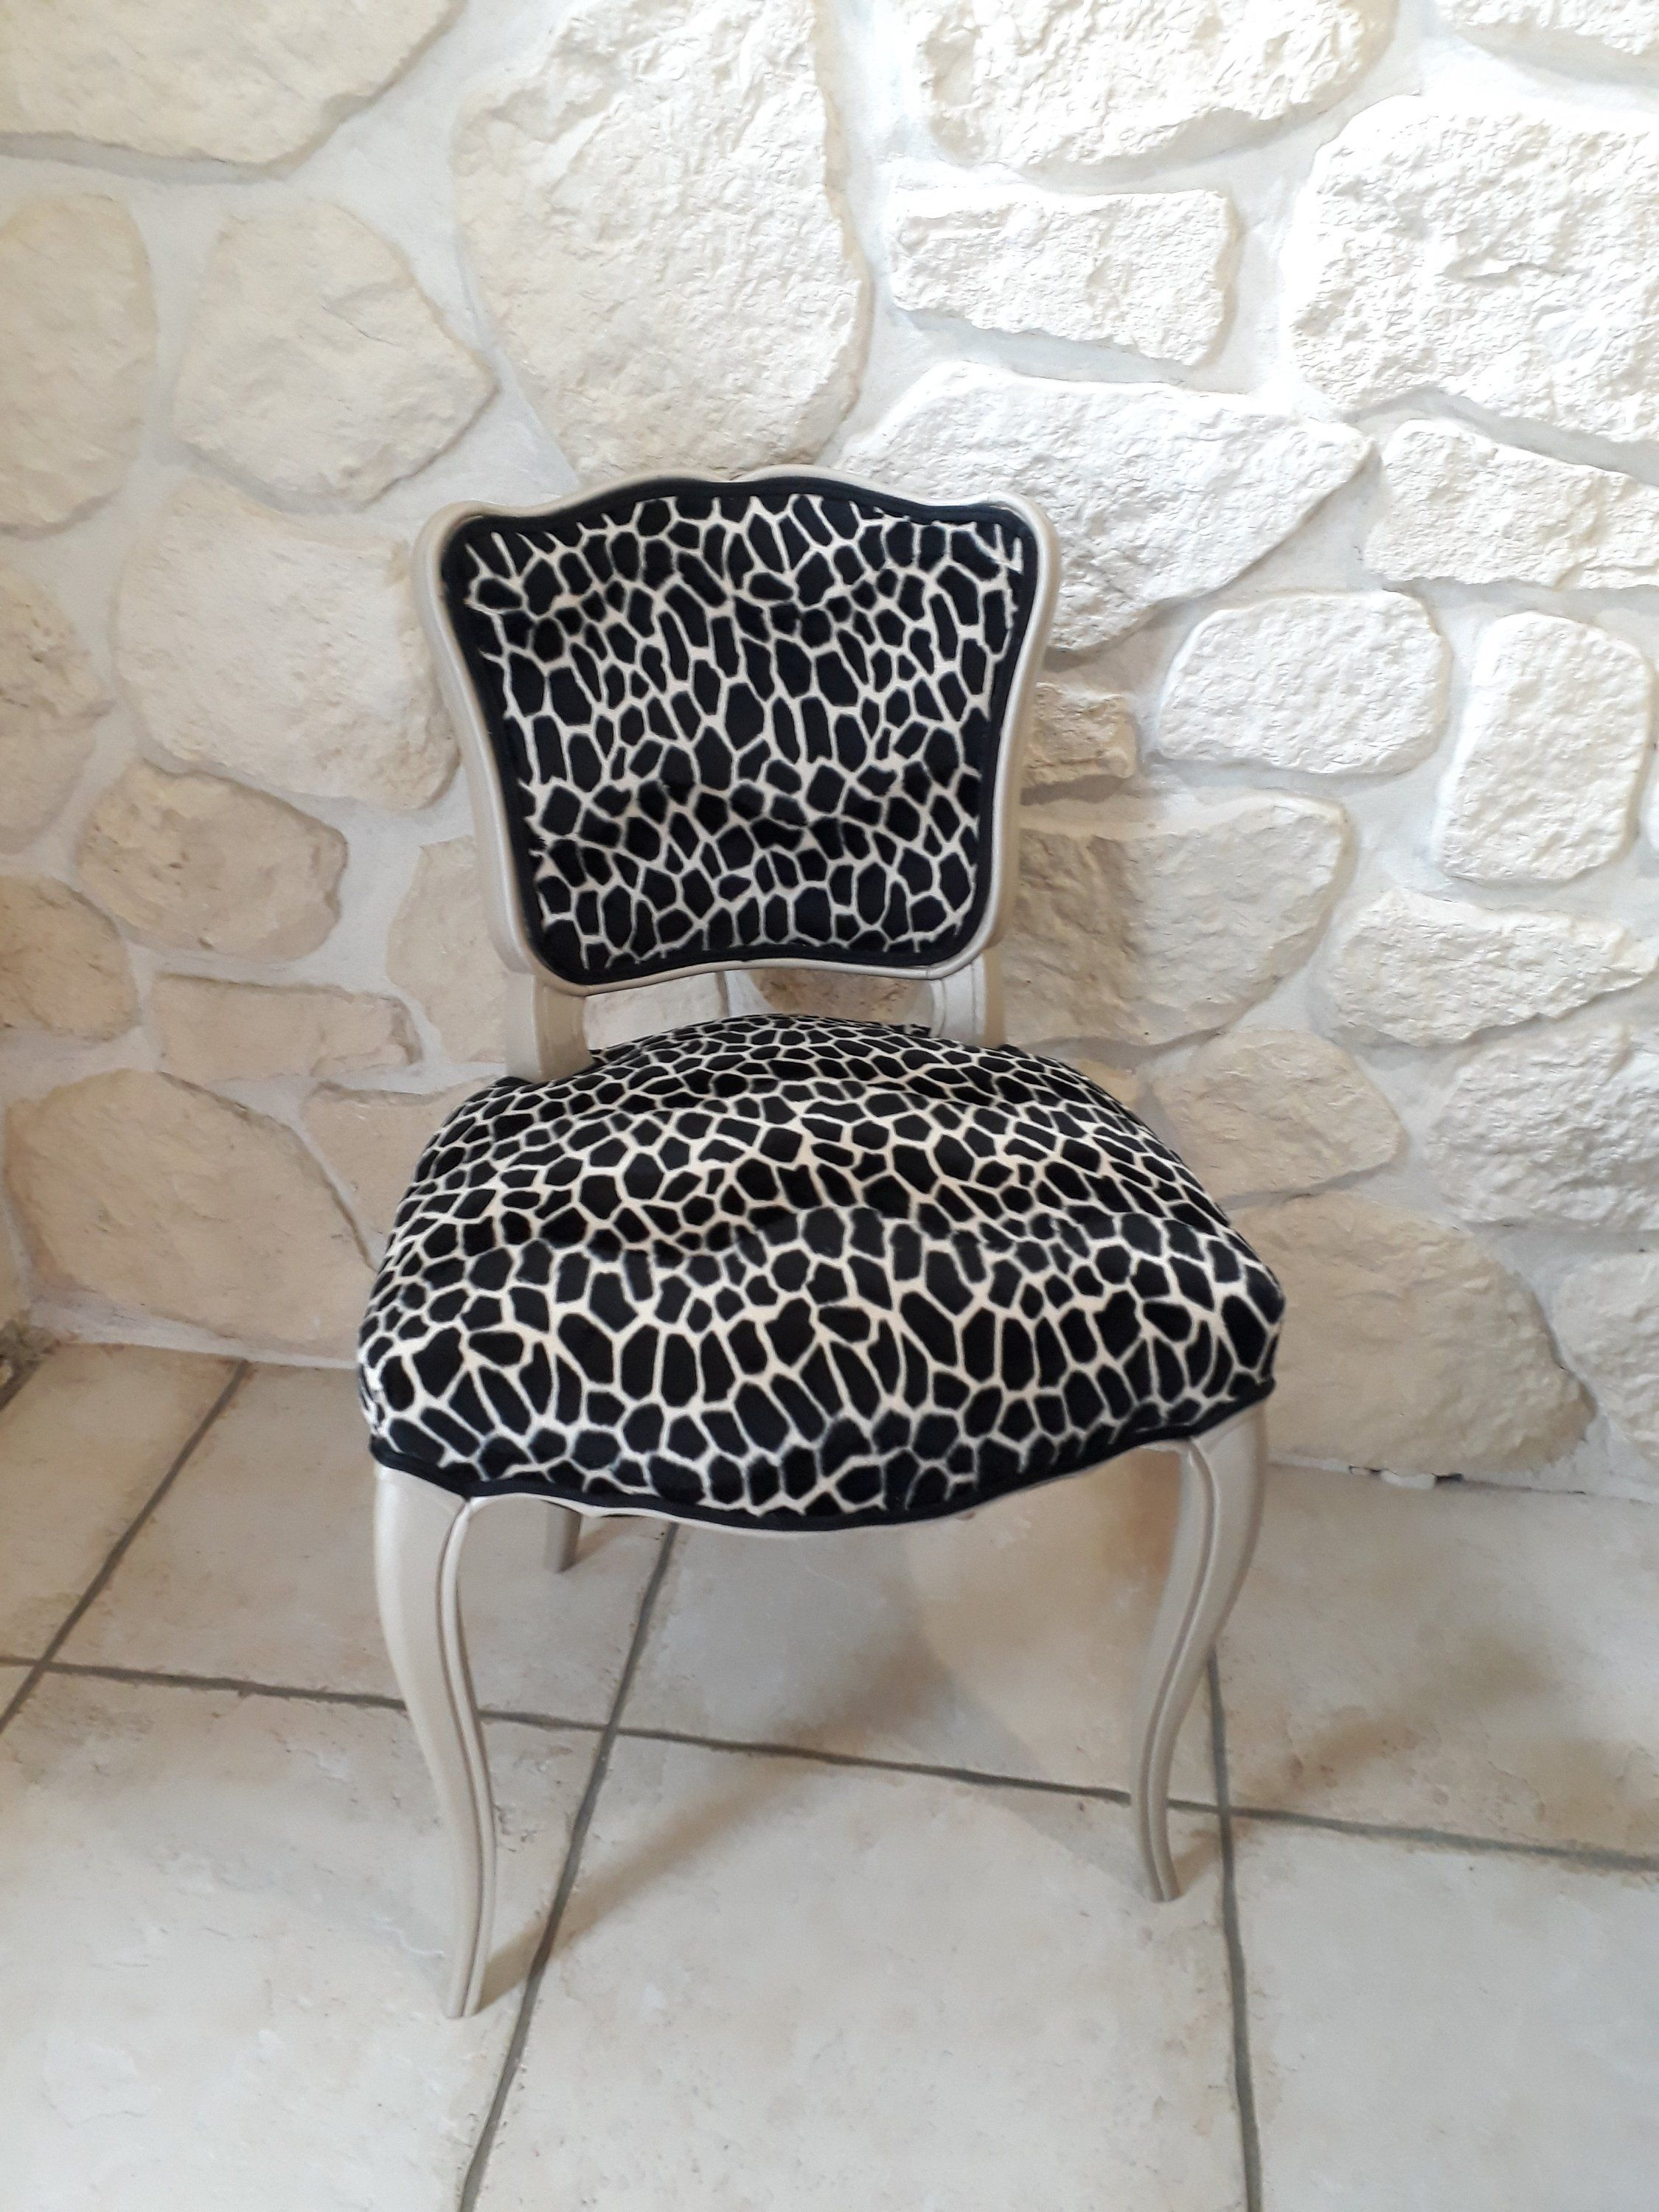 Chaise Louis Xv Relookee Facon Jungle In 2020 Dining Chair Makeover Chair Makeover Makeover